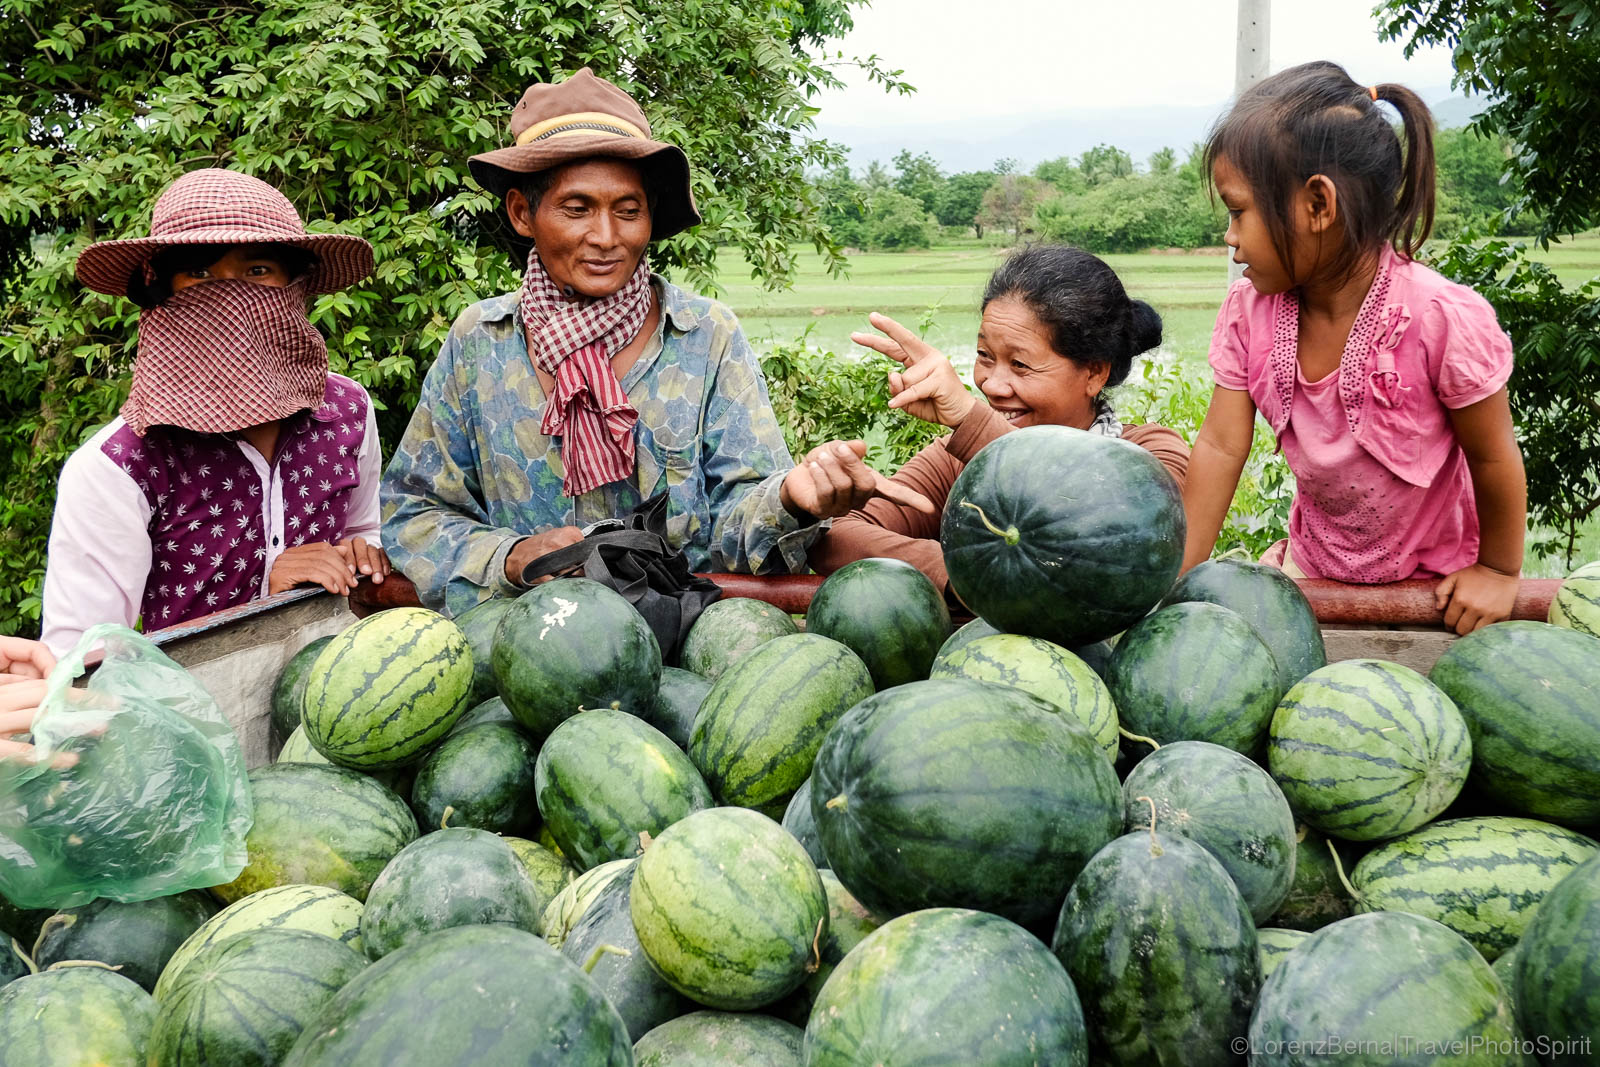 Local farmers selling their watermelons on the side of the road, Kampot countryside, Cambodia